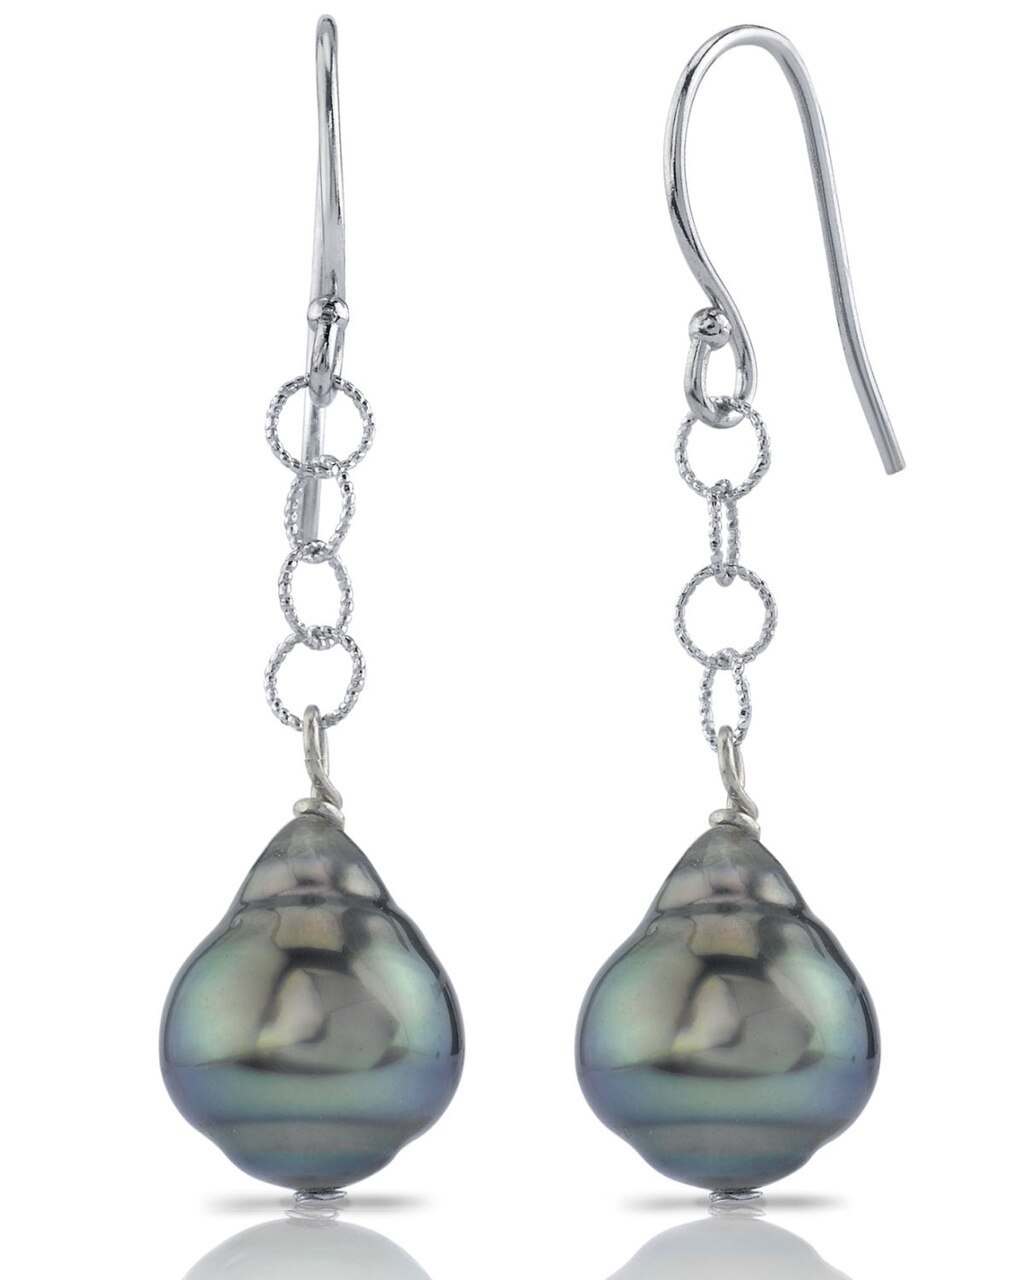 Exquisite earrings feature two 9.0-10mm  Tahitian South Sea pearls, selected for their luminous luster